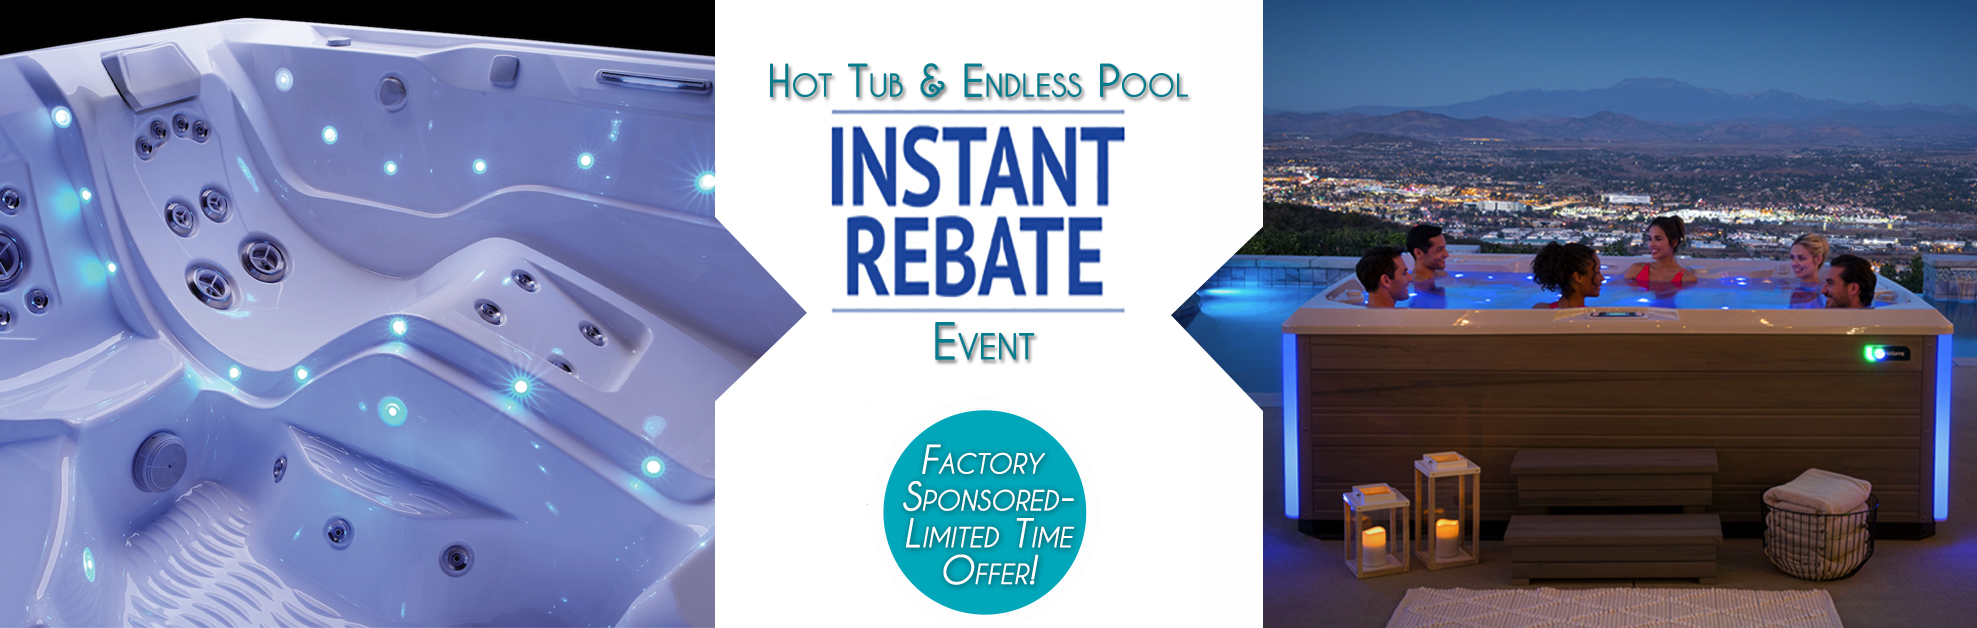 September Rebate Event